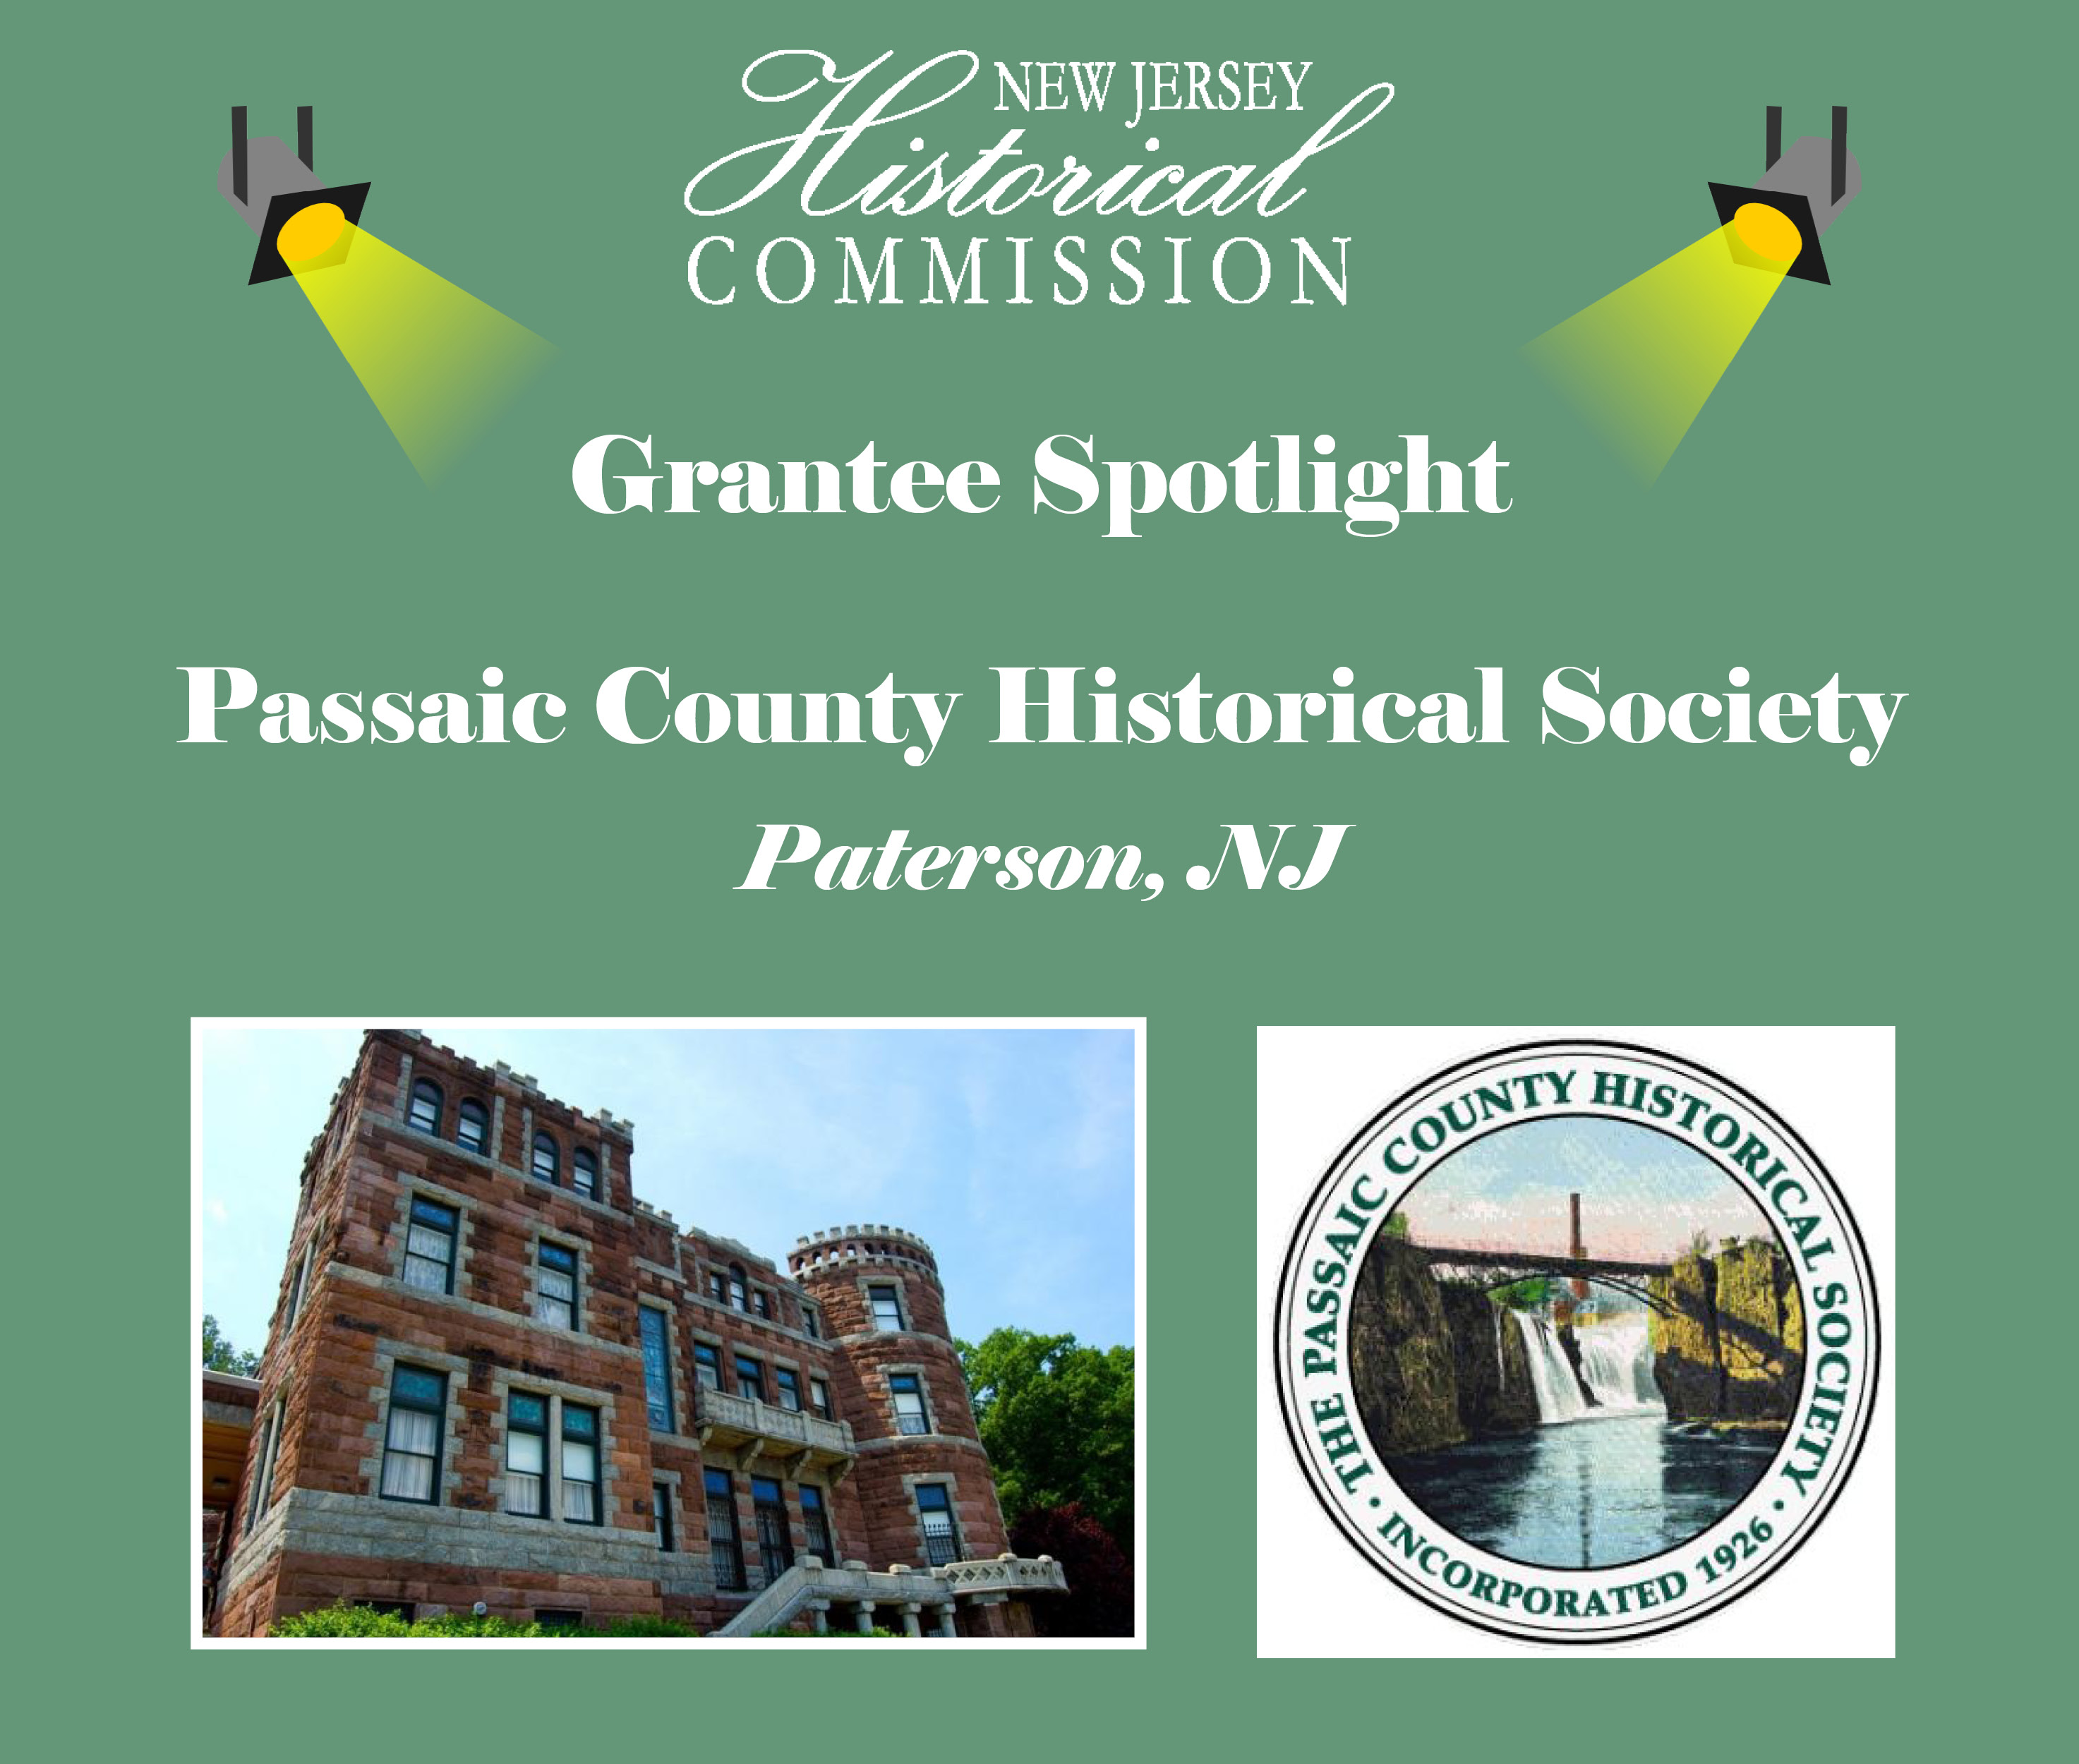 New Jersey Historical Commission (NJHC) Grantee Spotlight: Passaic County Historical Society